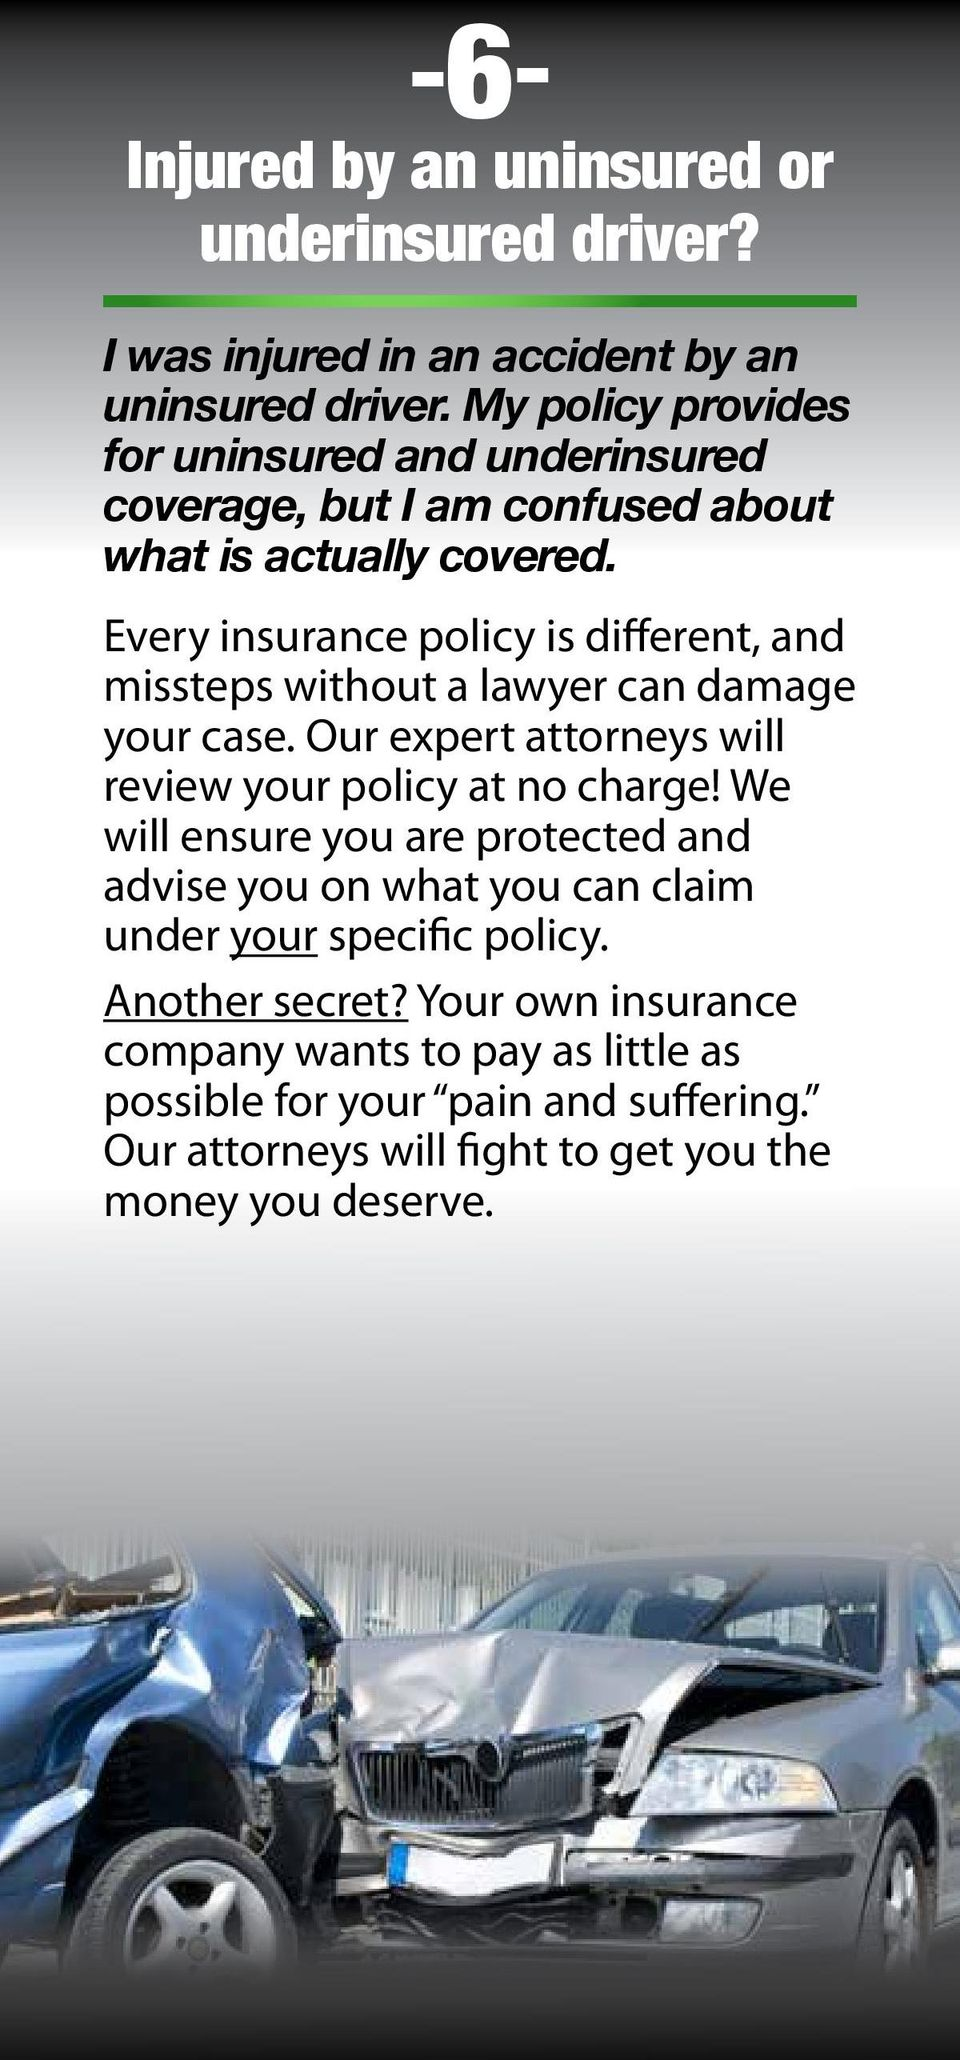 Every insurance policy is different, and missteps without a lawyer can damage your case. Our expert attorneys will review your policy at no charge!